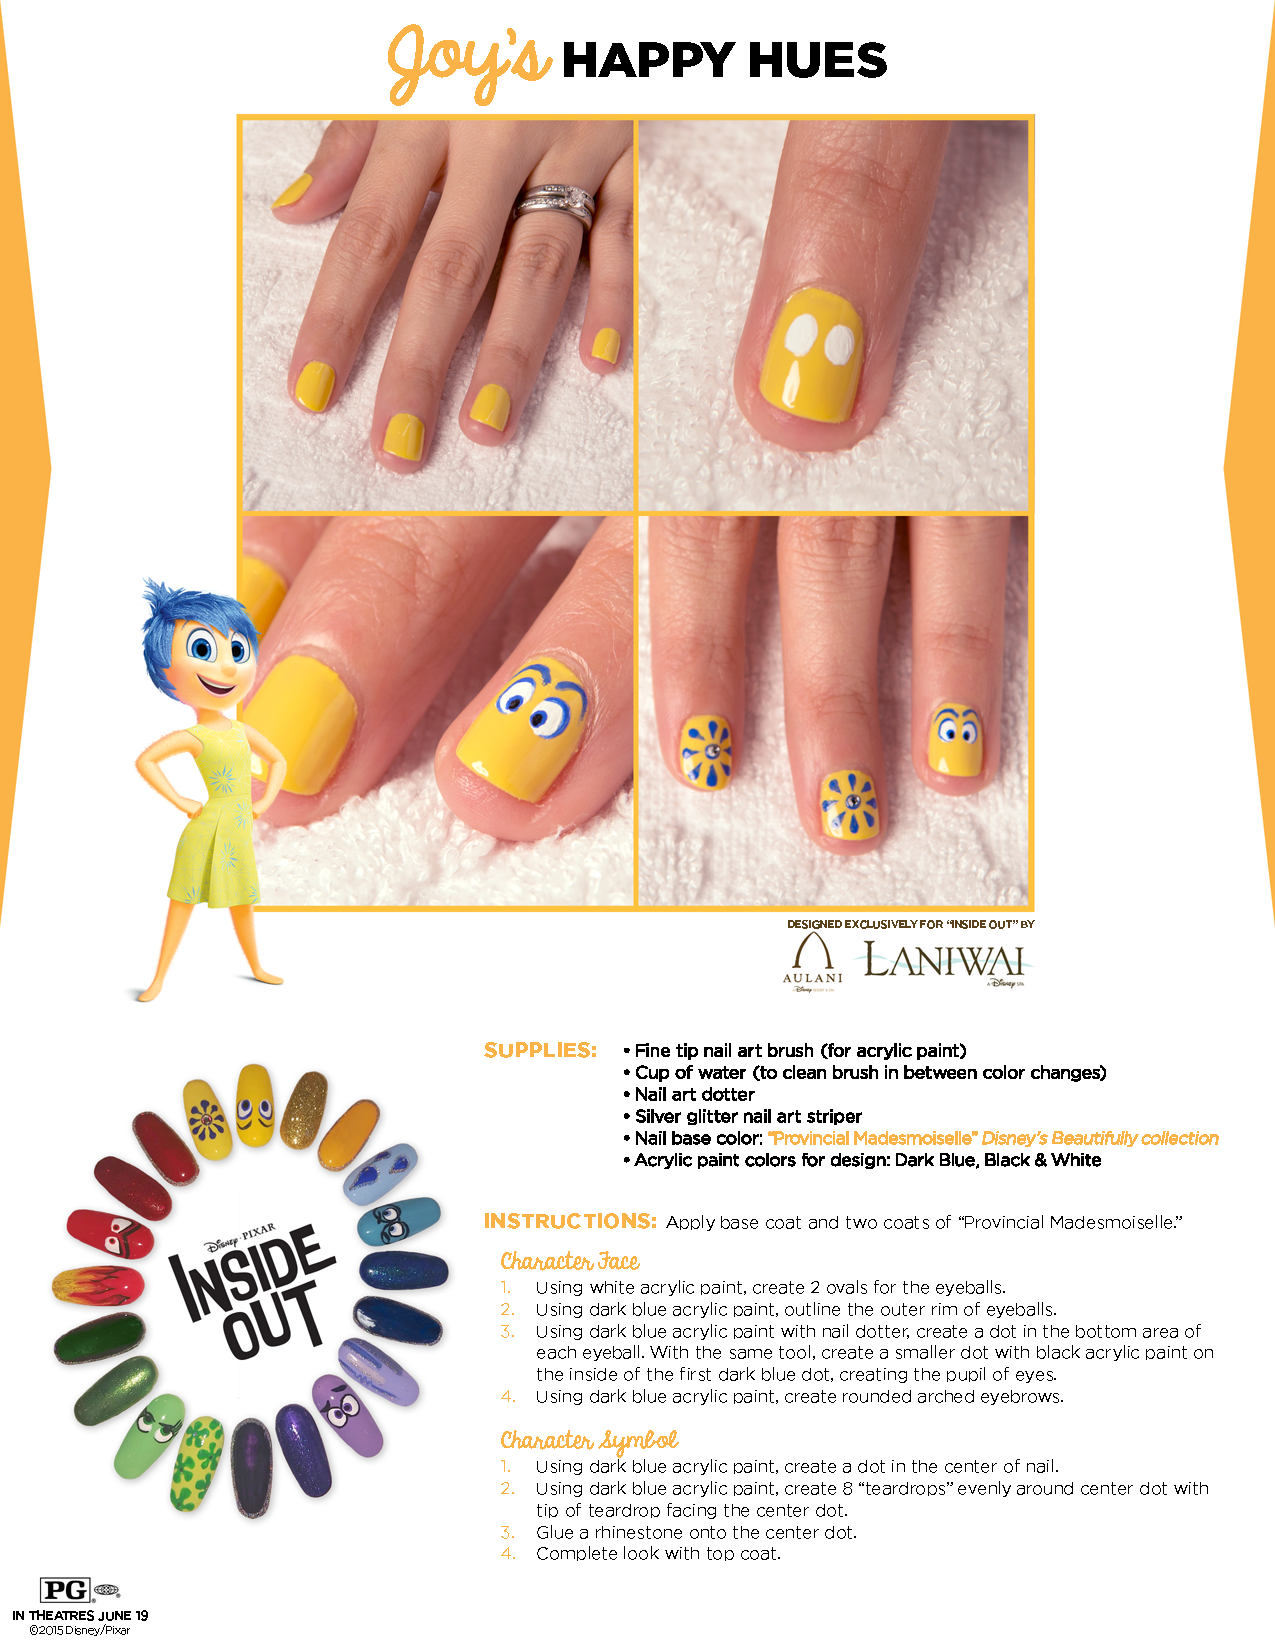 Get emotional with this insideout inspired nail art tutorial